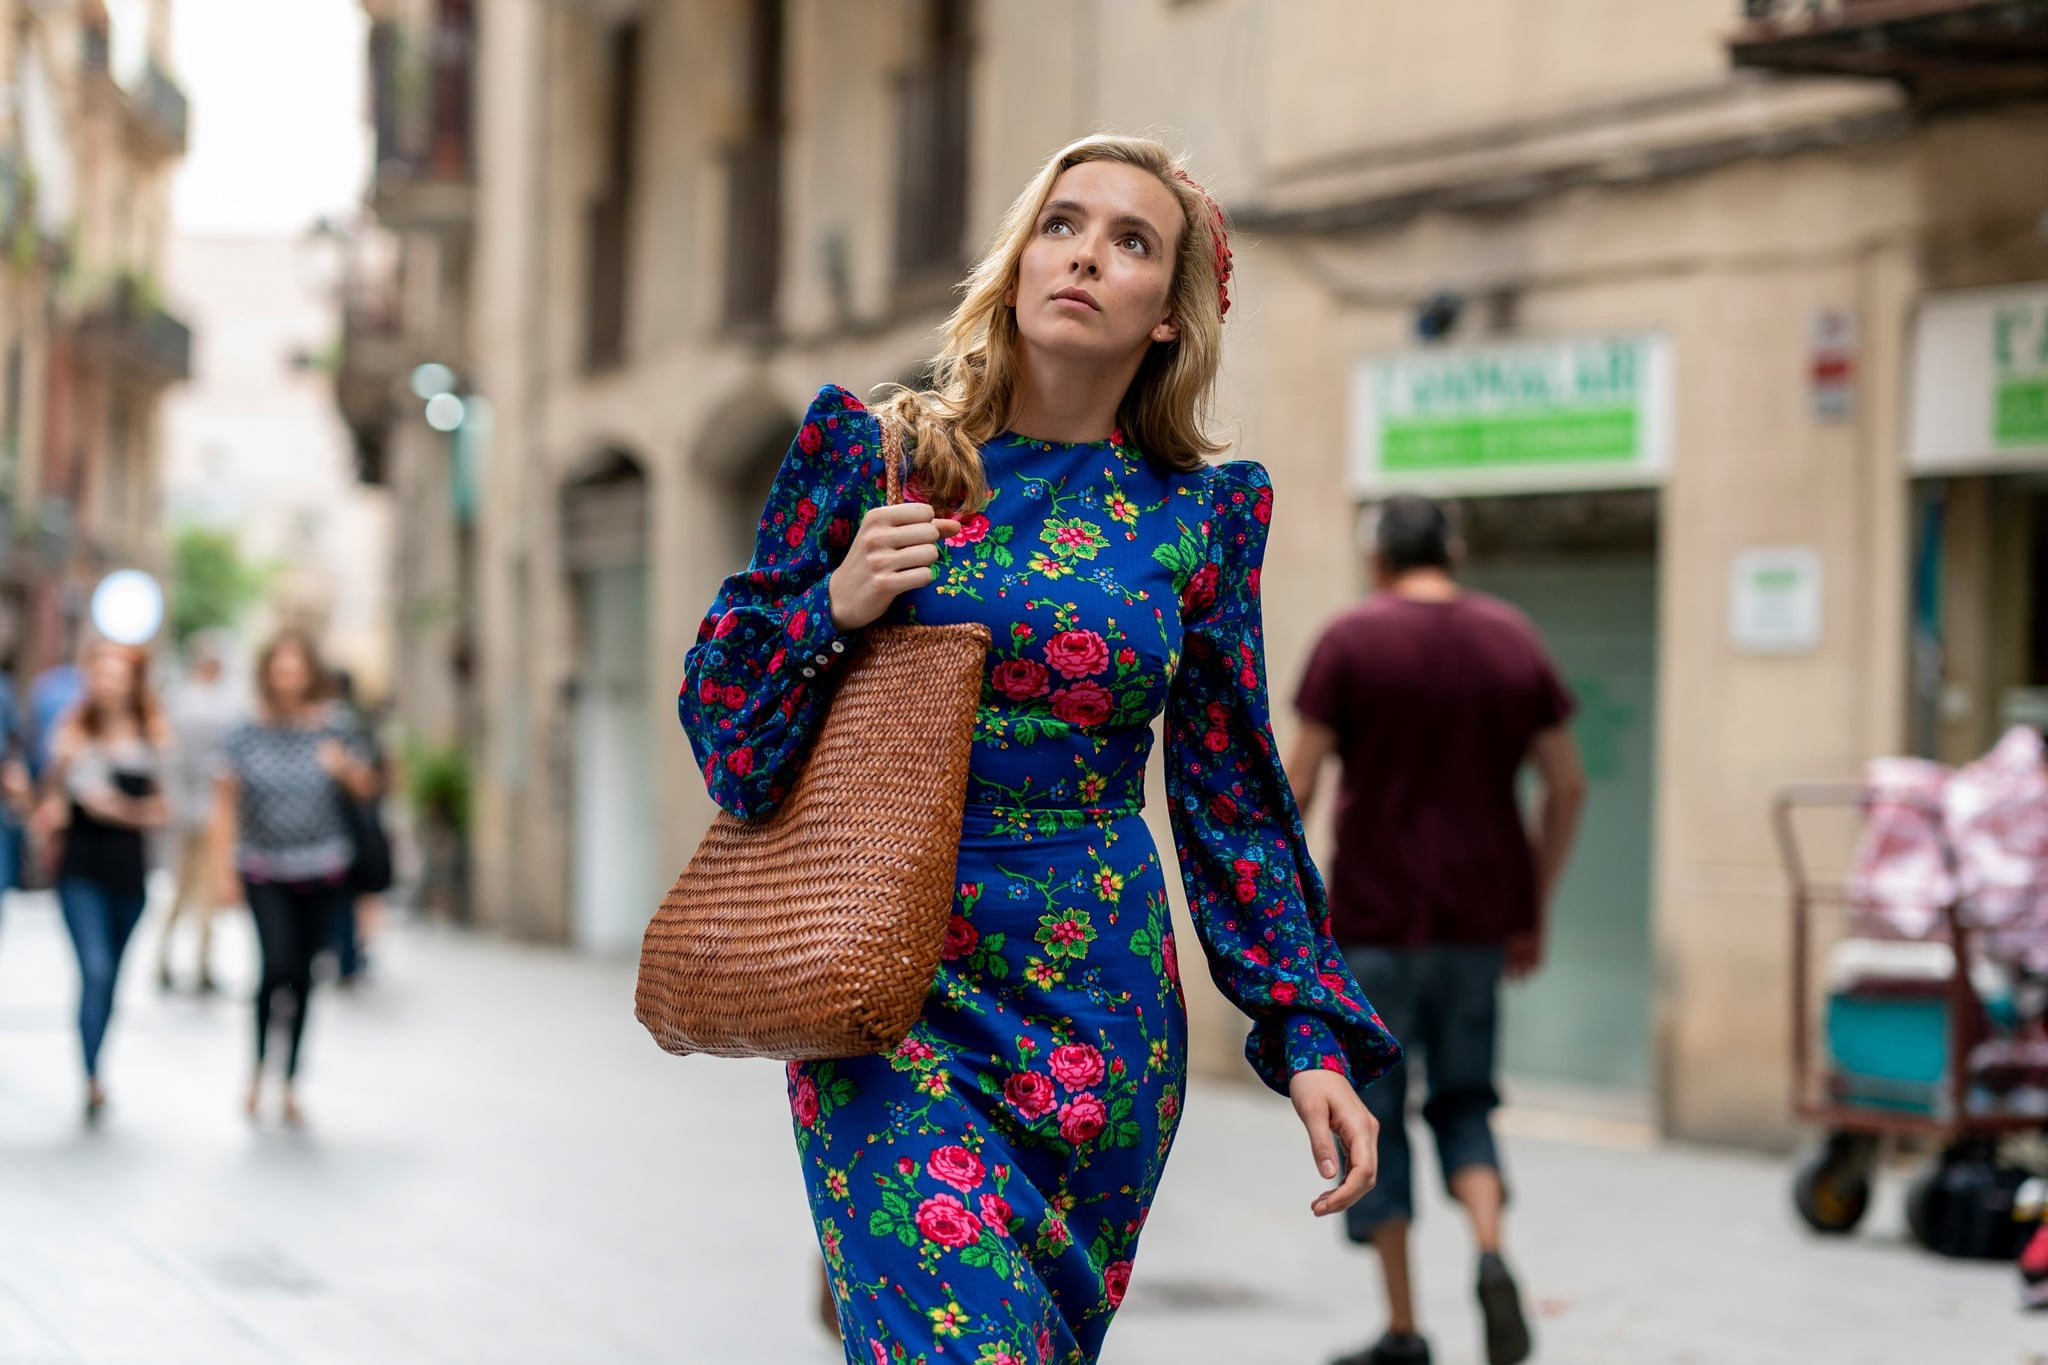 KILLING EVE, Jodie Comer, (Season 3, premiered Apr. 12, 2020). photo: Des Willie / BBC-America / Courtesy Everett Collection